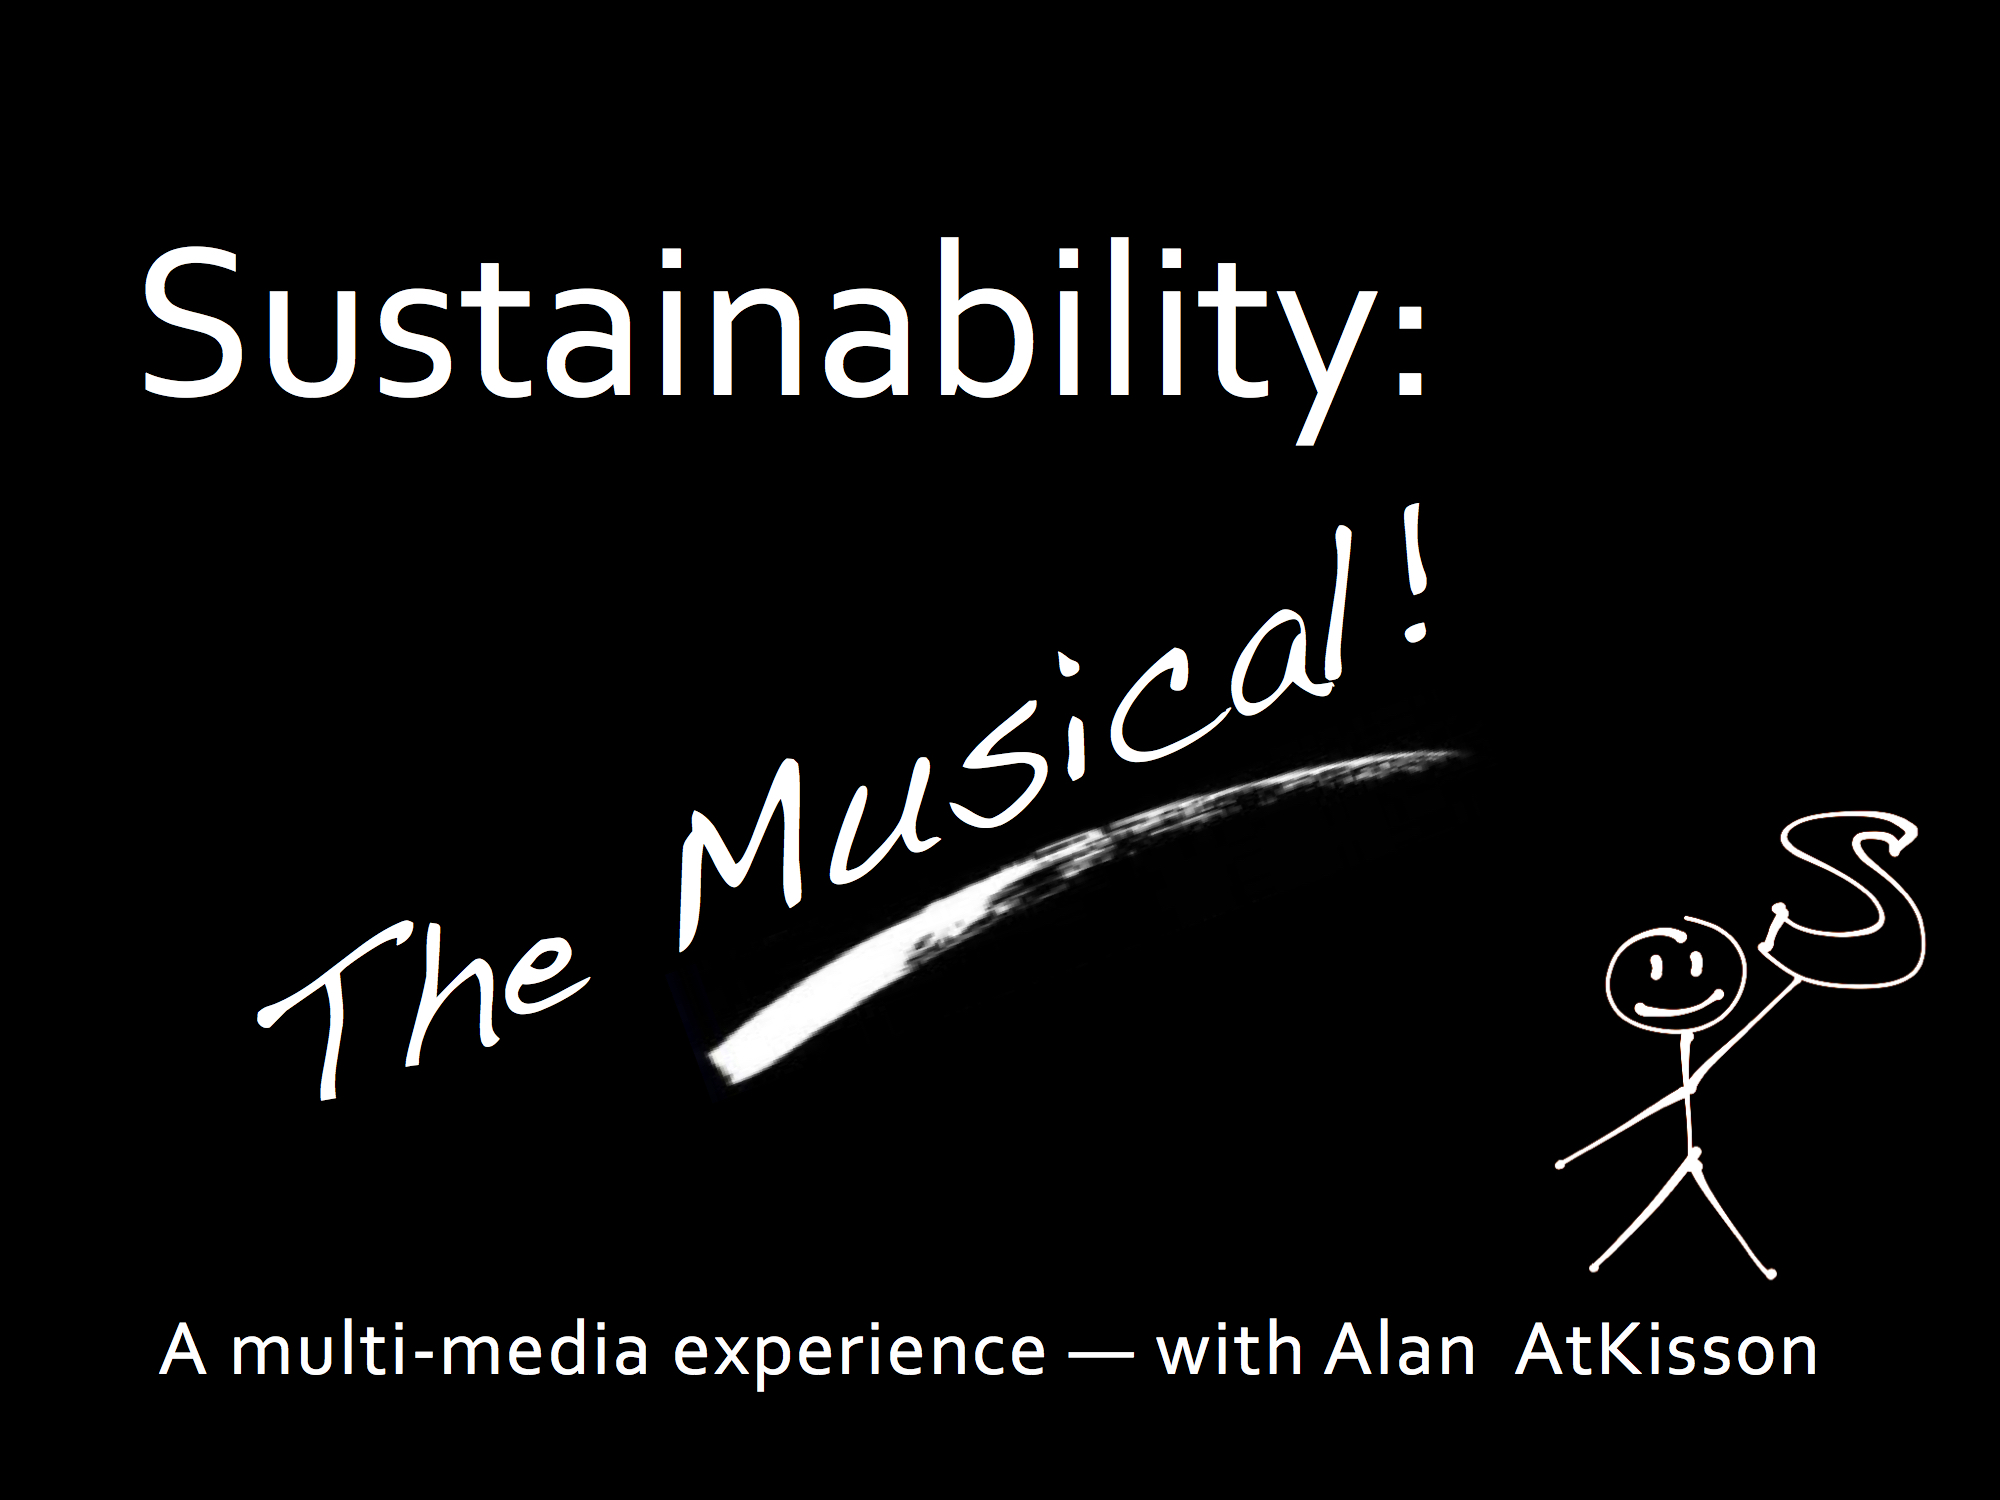 Sustainability: The Musical!